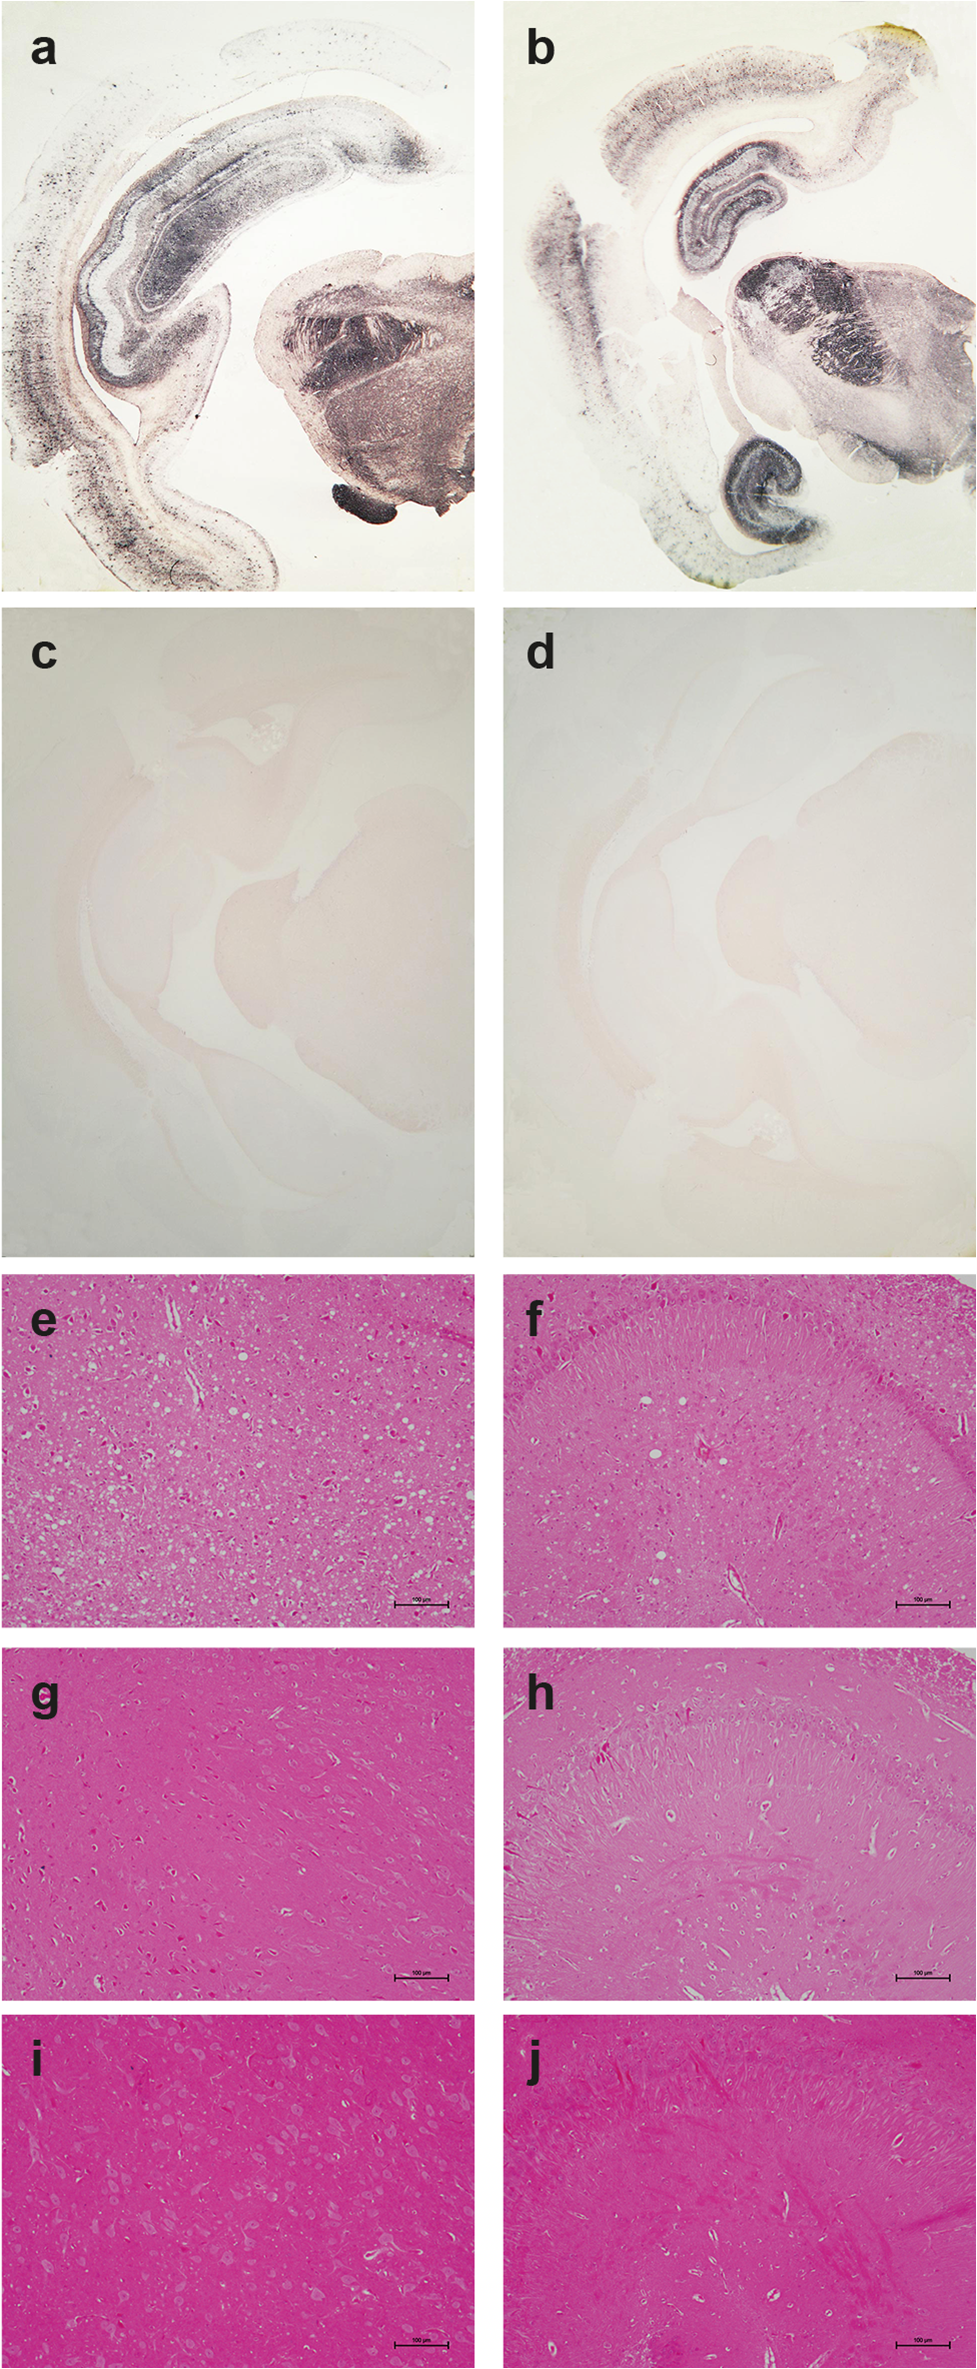 Pathological PrP deposition and vacuolation in the brains of wild-type and tgOv rabbits inoculated with LA21K <i>fast</i> scrapie prions.